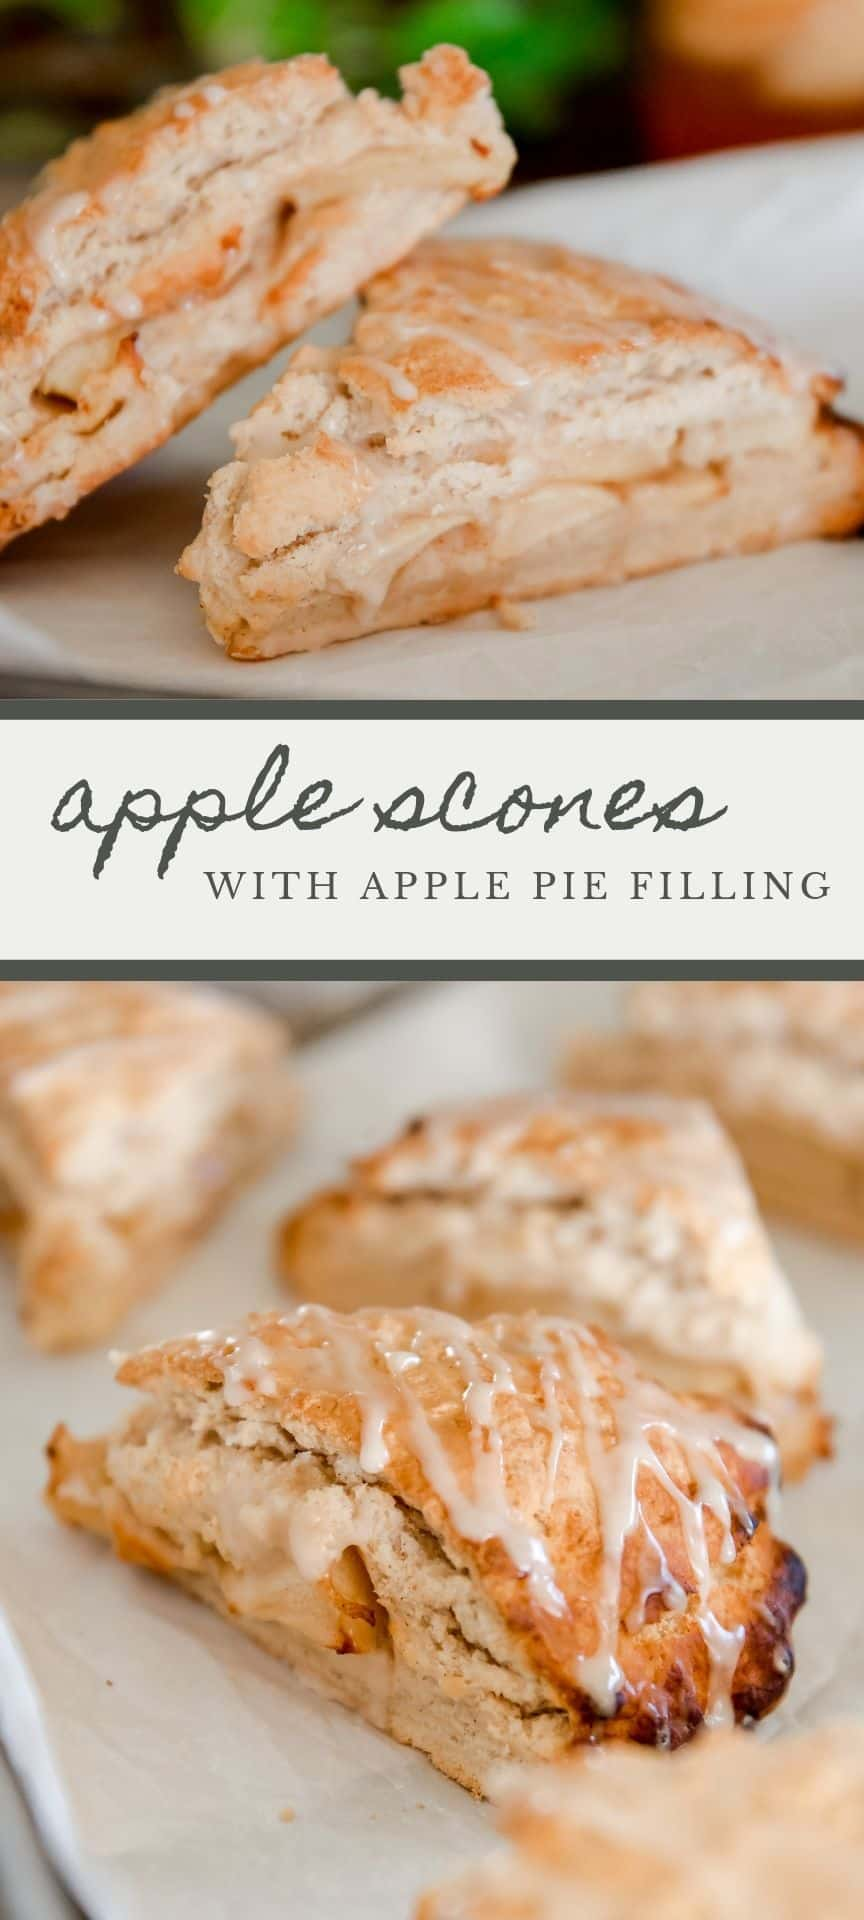 Looking for a delicious recipe for apple scones? You've come to the right place! These apple scones feature apple pie filling sandwiched between two layers of buttery dough!